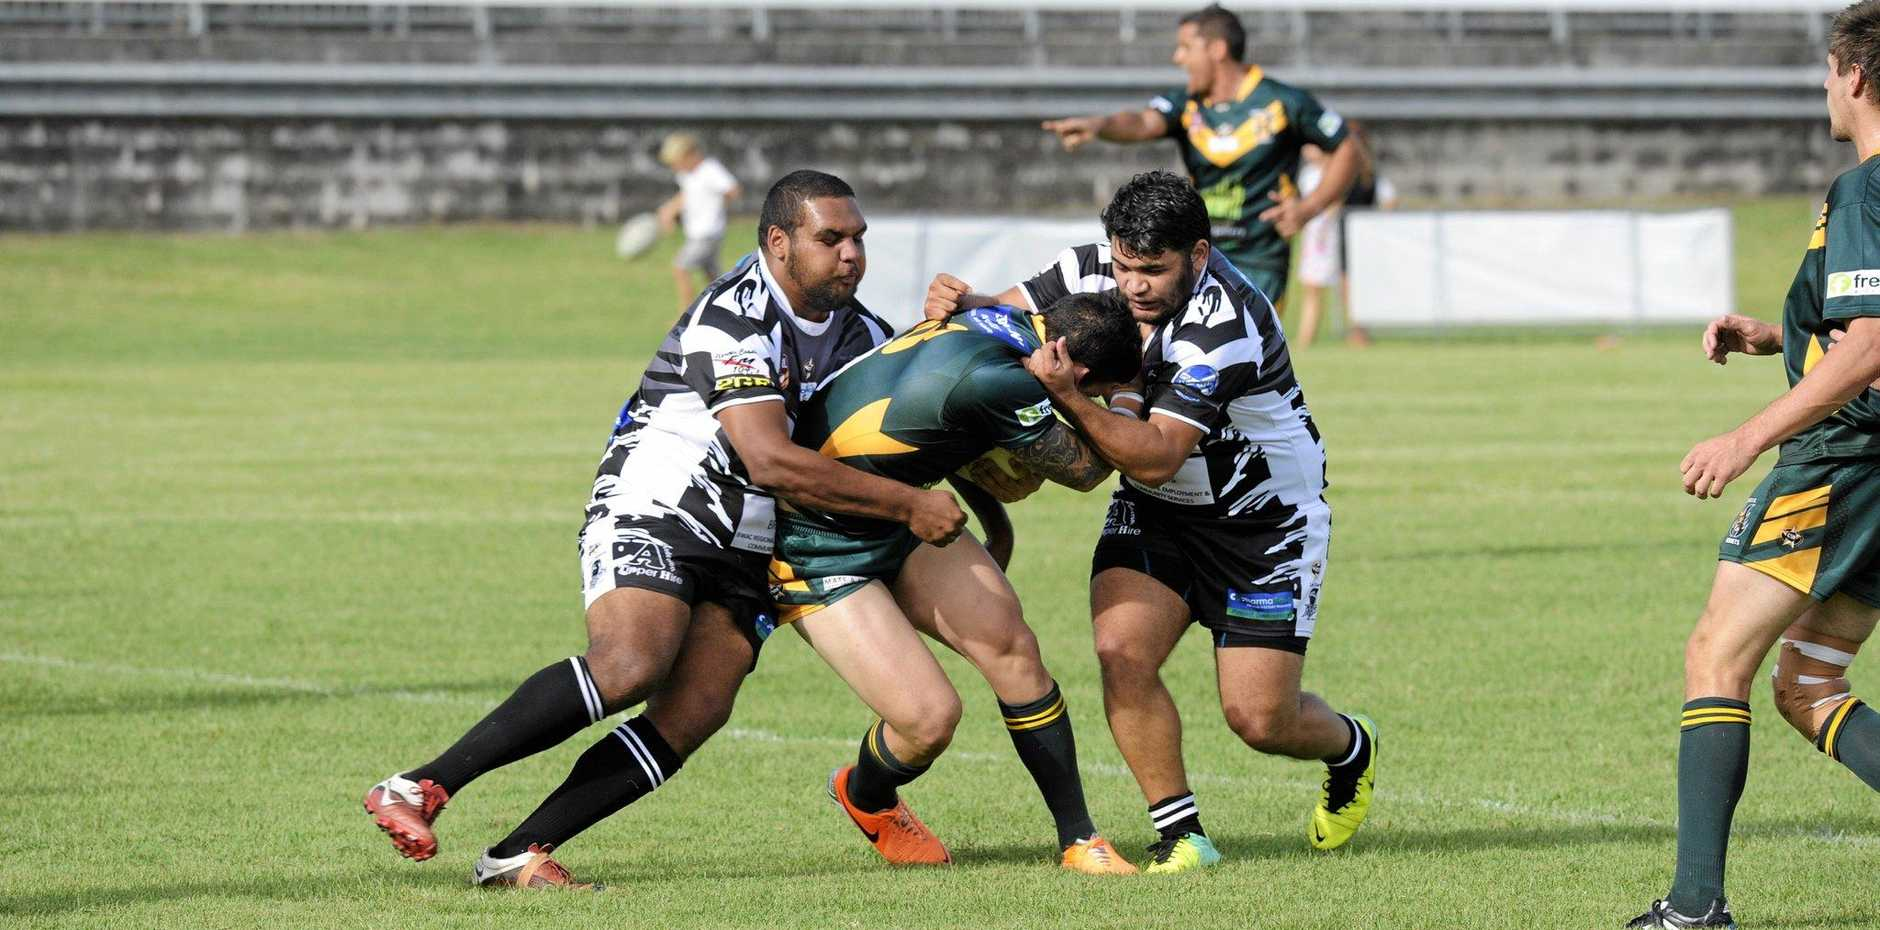 GAME ON: Magpie players Kurtis Laurie (left) and Ben Williams during the Lower Clarence Magpies versus Cudgen NRRRL match on Sunday.